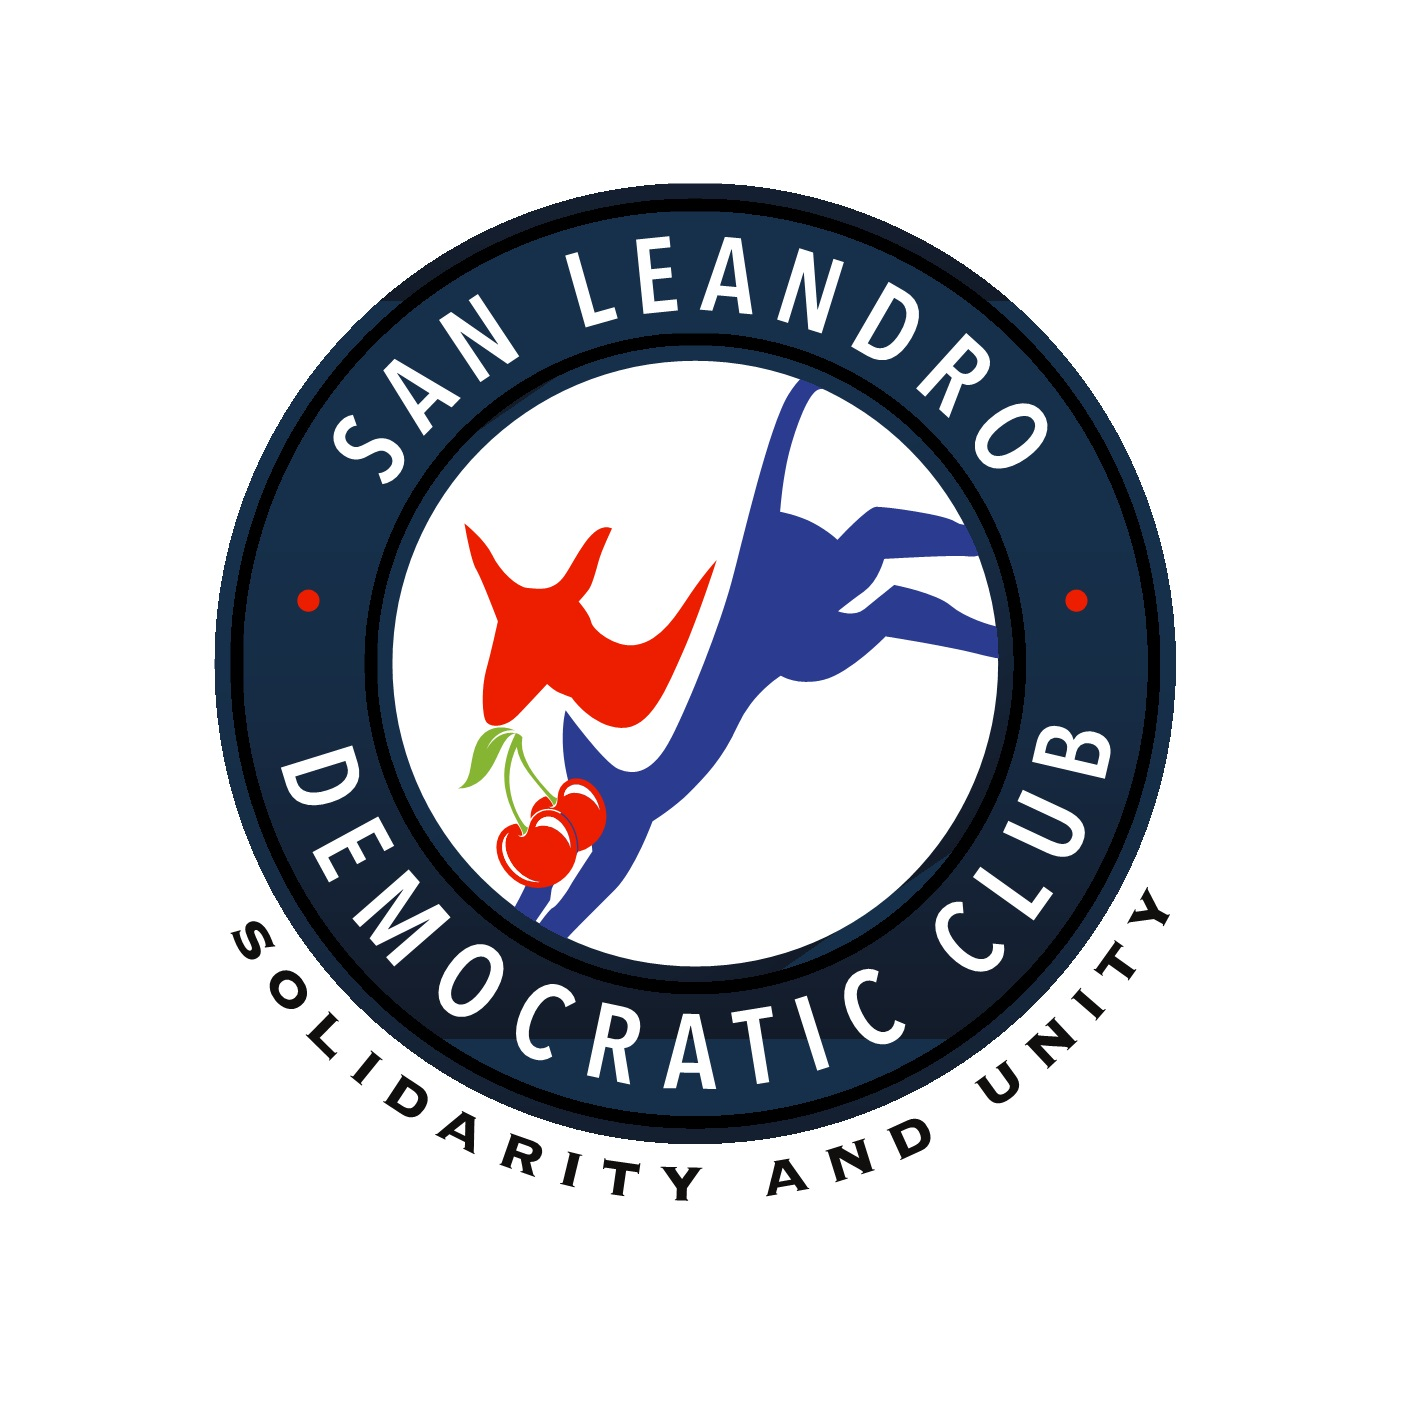 San Leandro Demo Club